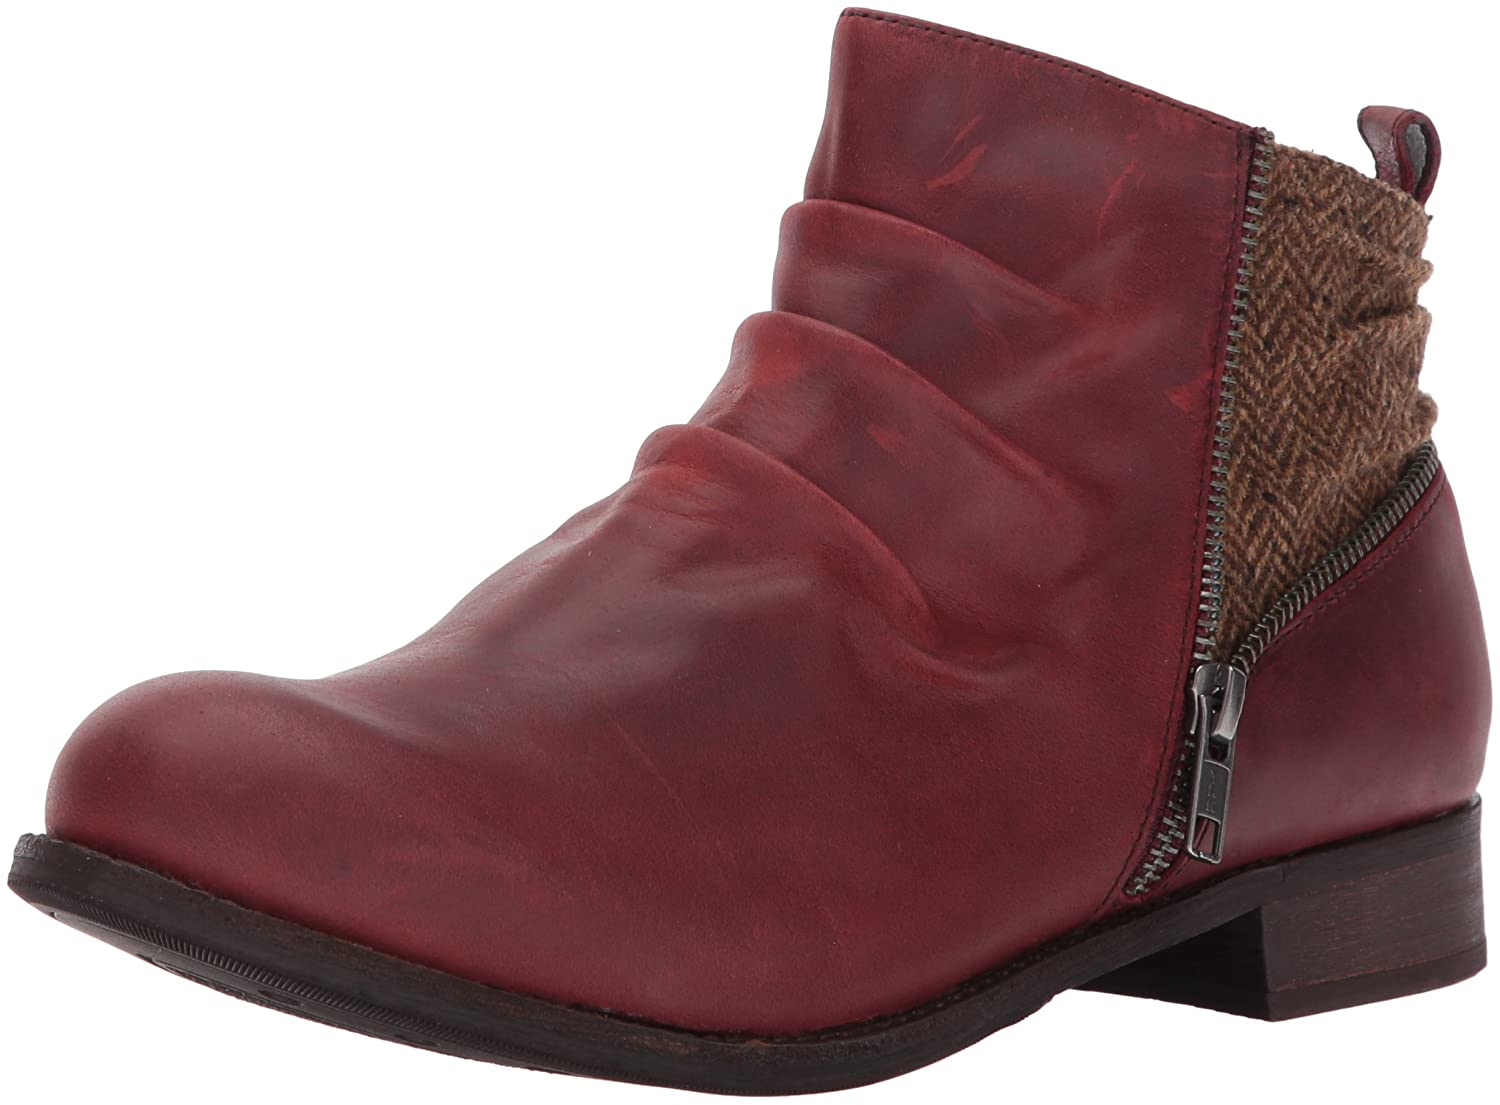 Caterpillar Women's Kiley Pleated Leather Bootie with Tweed Accents Ankle Boot B01MS4K93K 5 B(M) US|Sedona Tweed